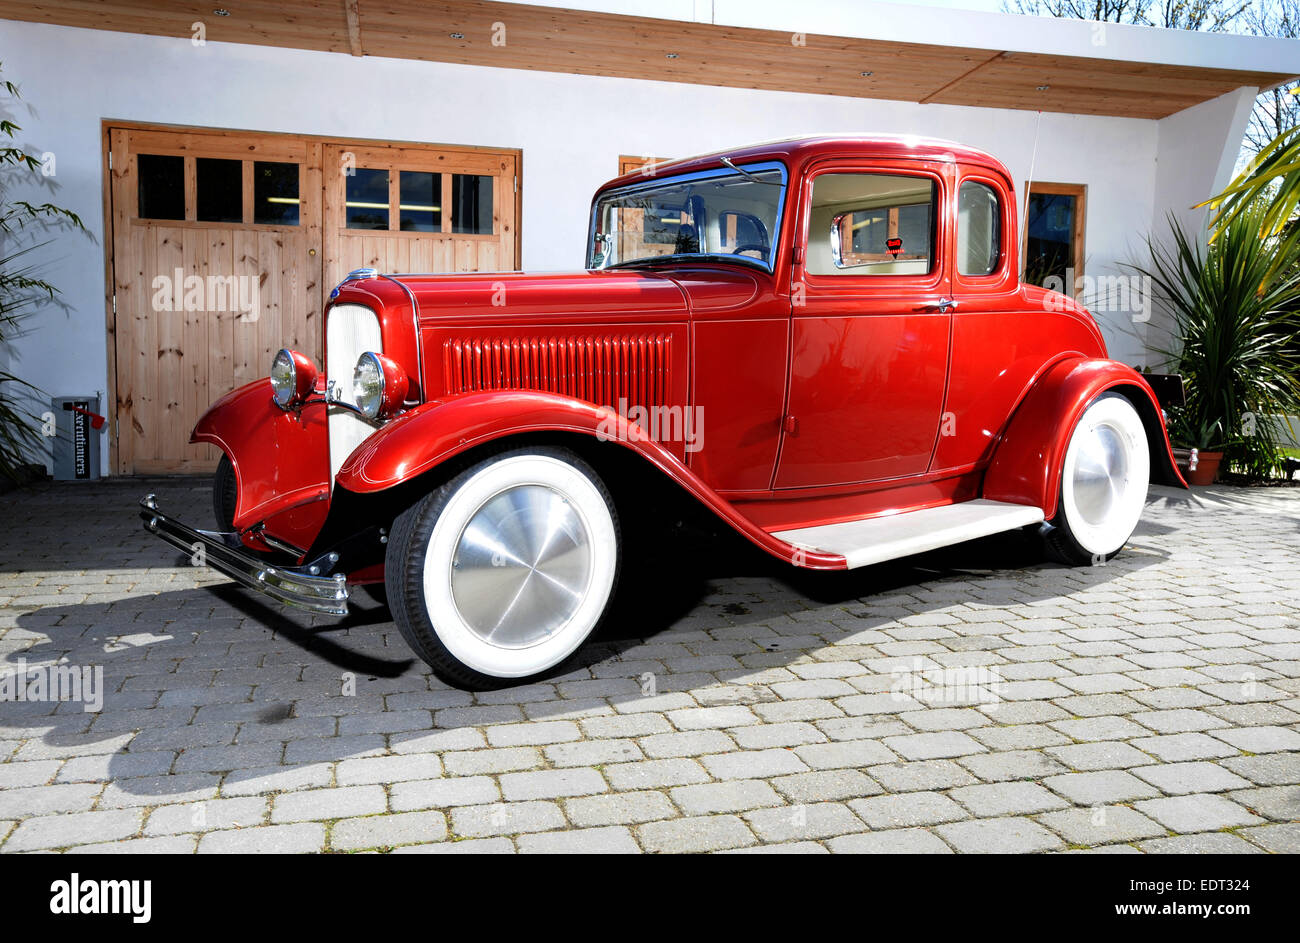 1930s ford cars built as hot rods in the 1940s or 50s stock photo 77361260 alamy. Black Bedroom Furniture Sets. Home Design Ideas